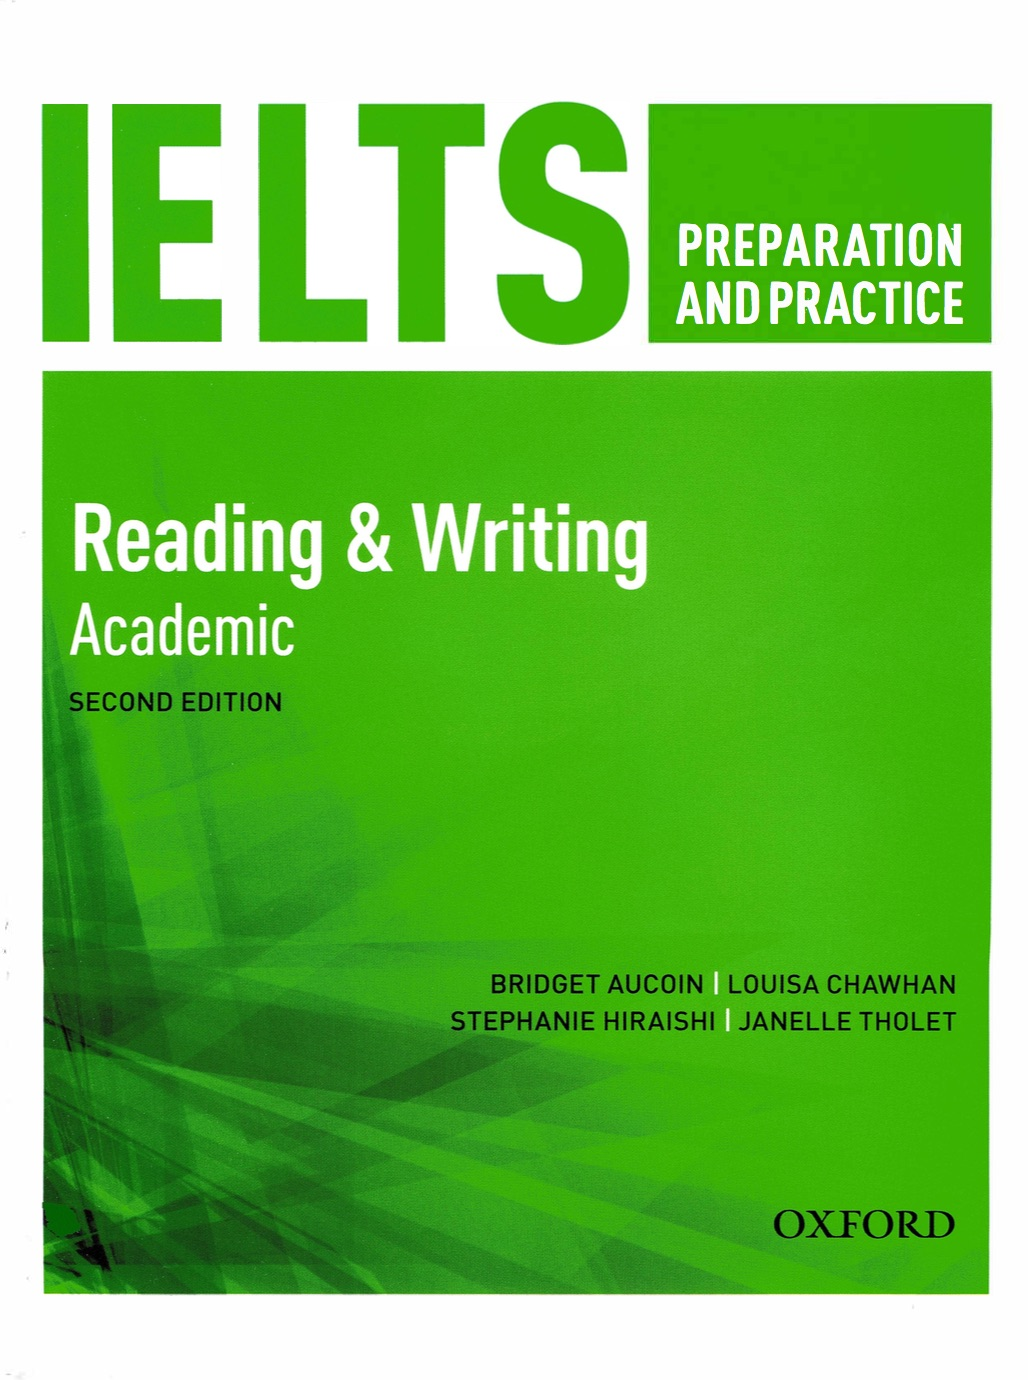 Book 4 Joy: Oxford IELTS Preparation and Practice Reading